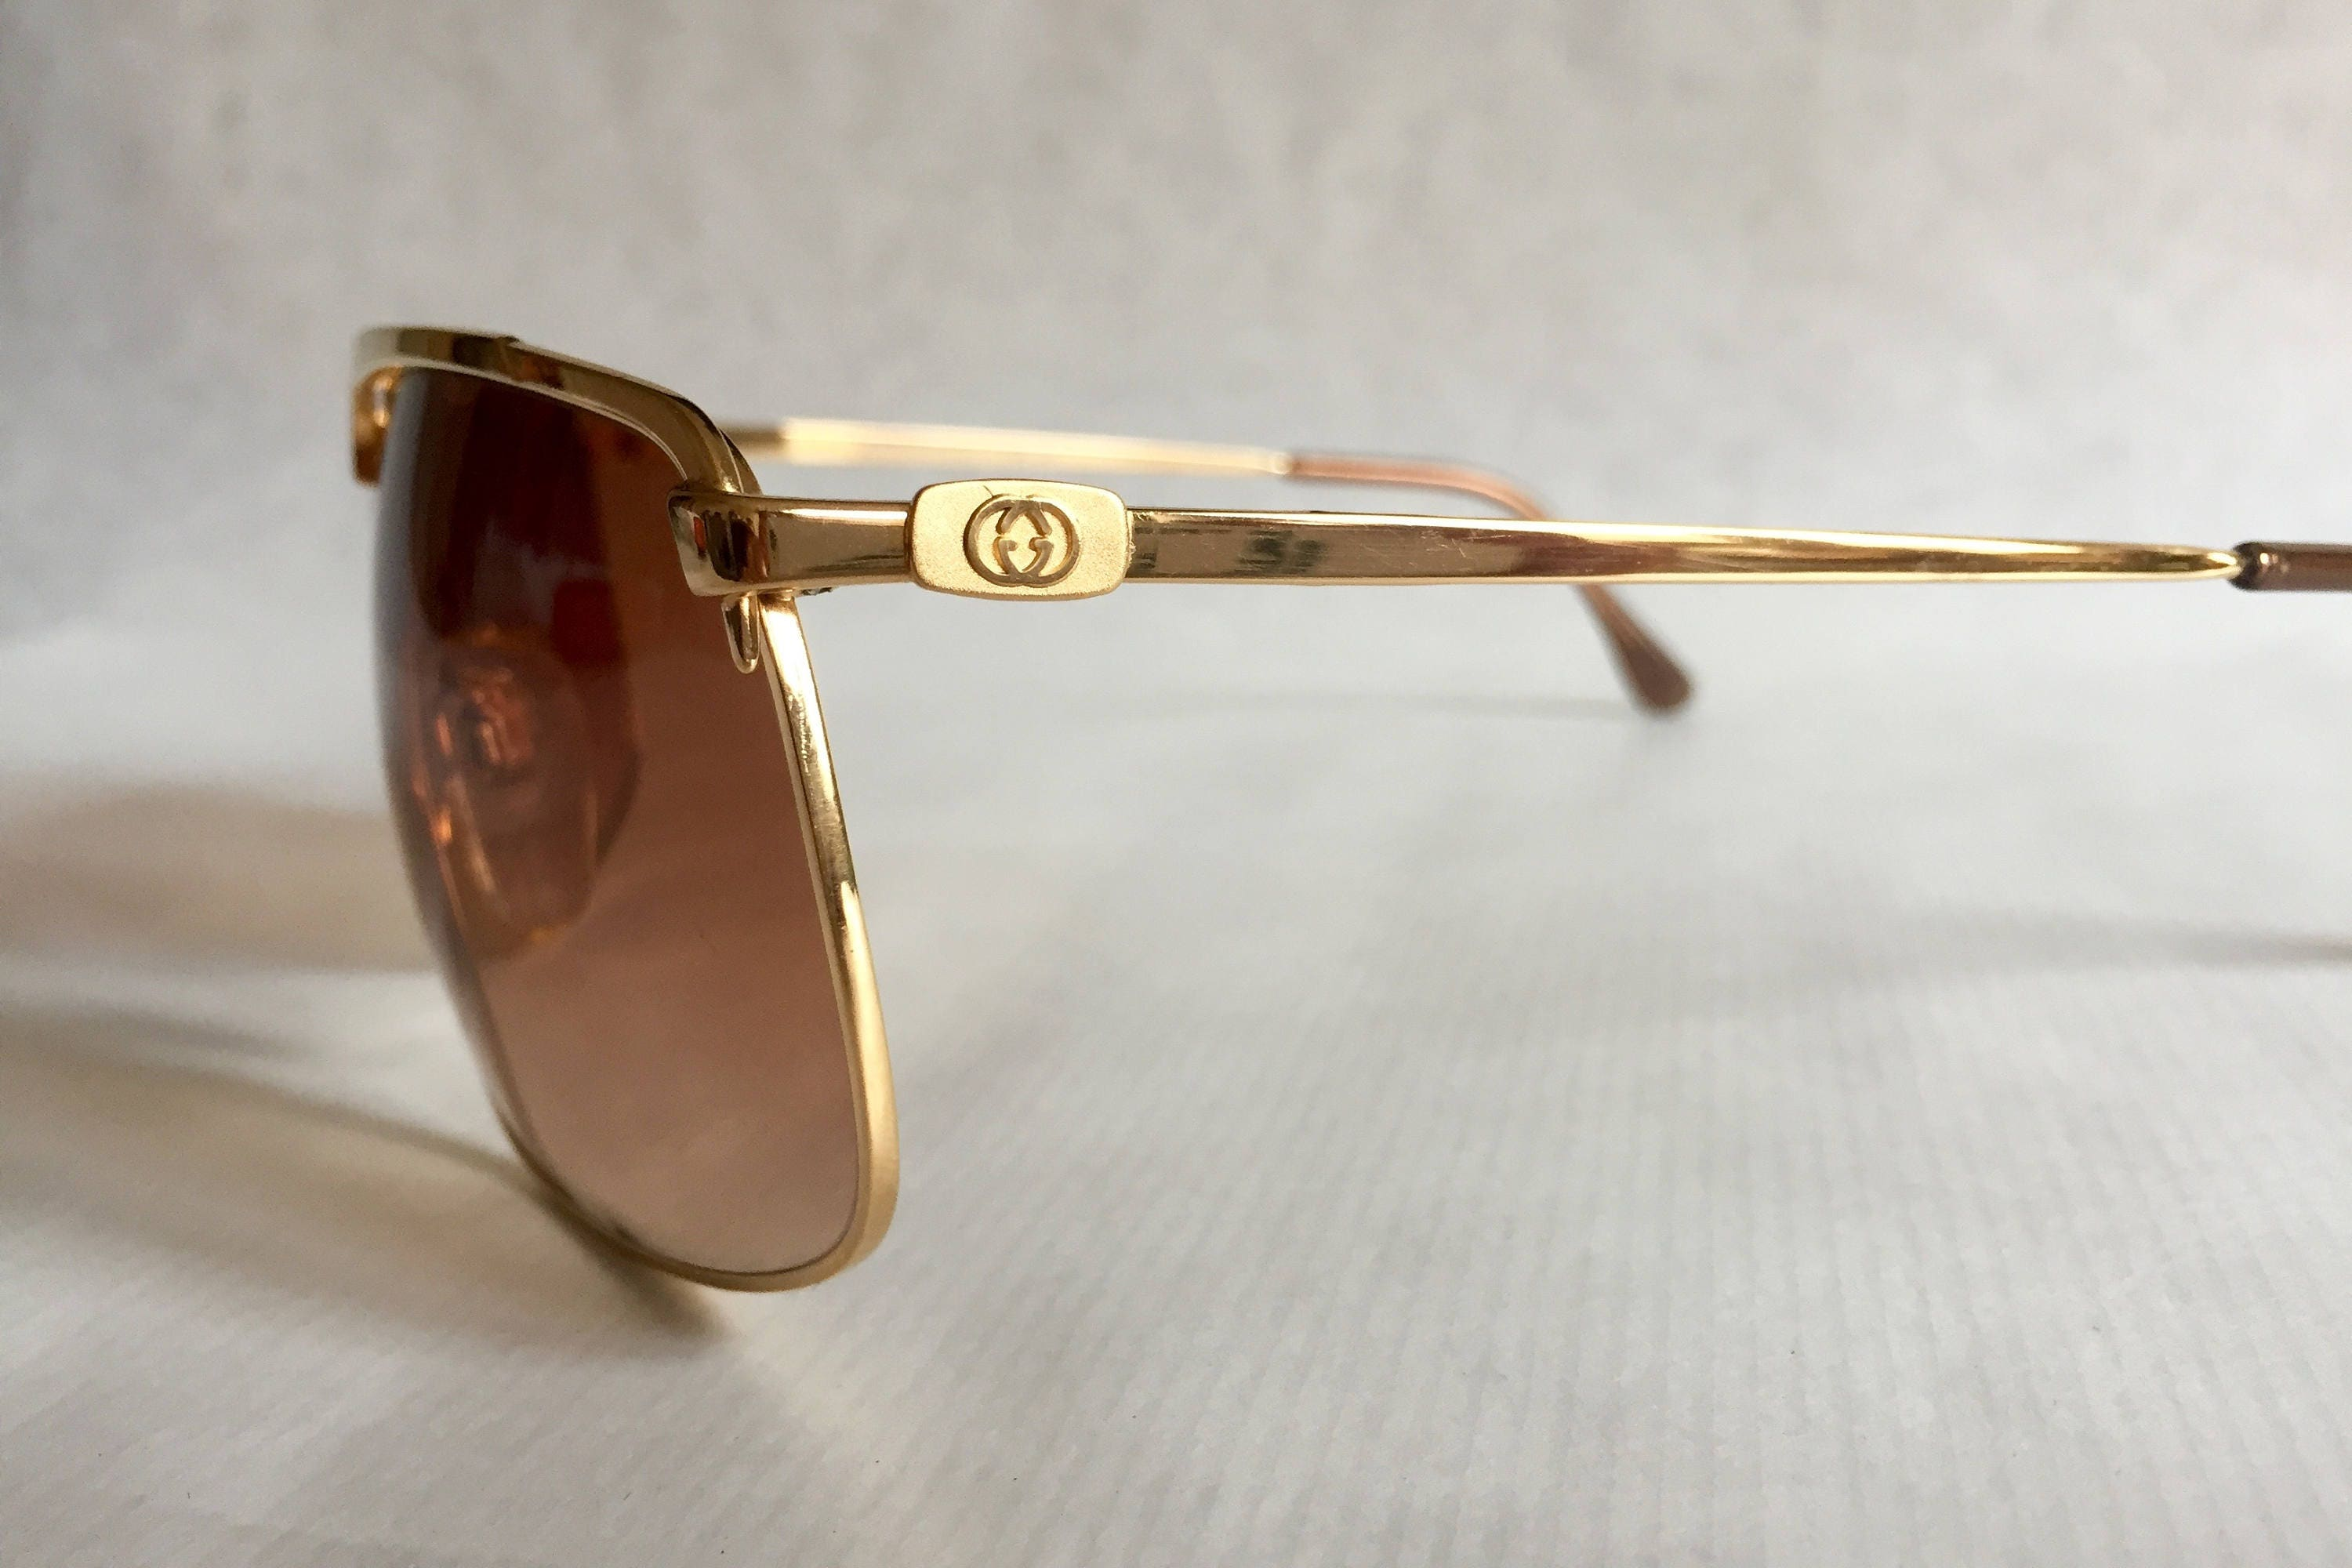 6387244a8fc ... Vintage Sunglasses New Old Stock including Original Box. gallery photo  gallery photo gallery photo gallery photo gallery photo gallery photo  gallery ...